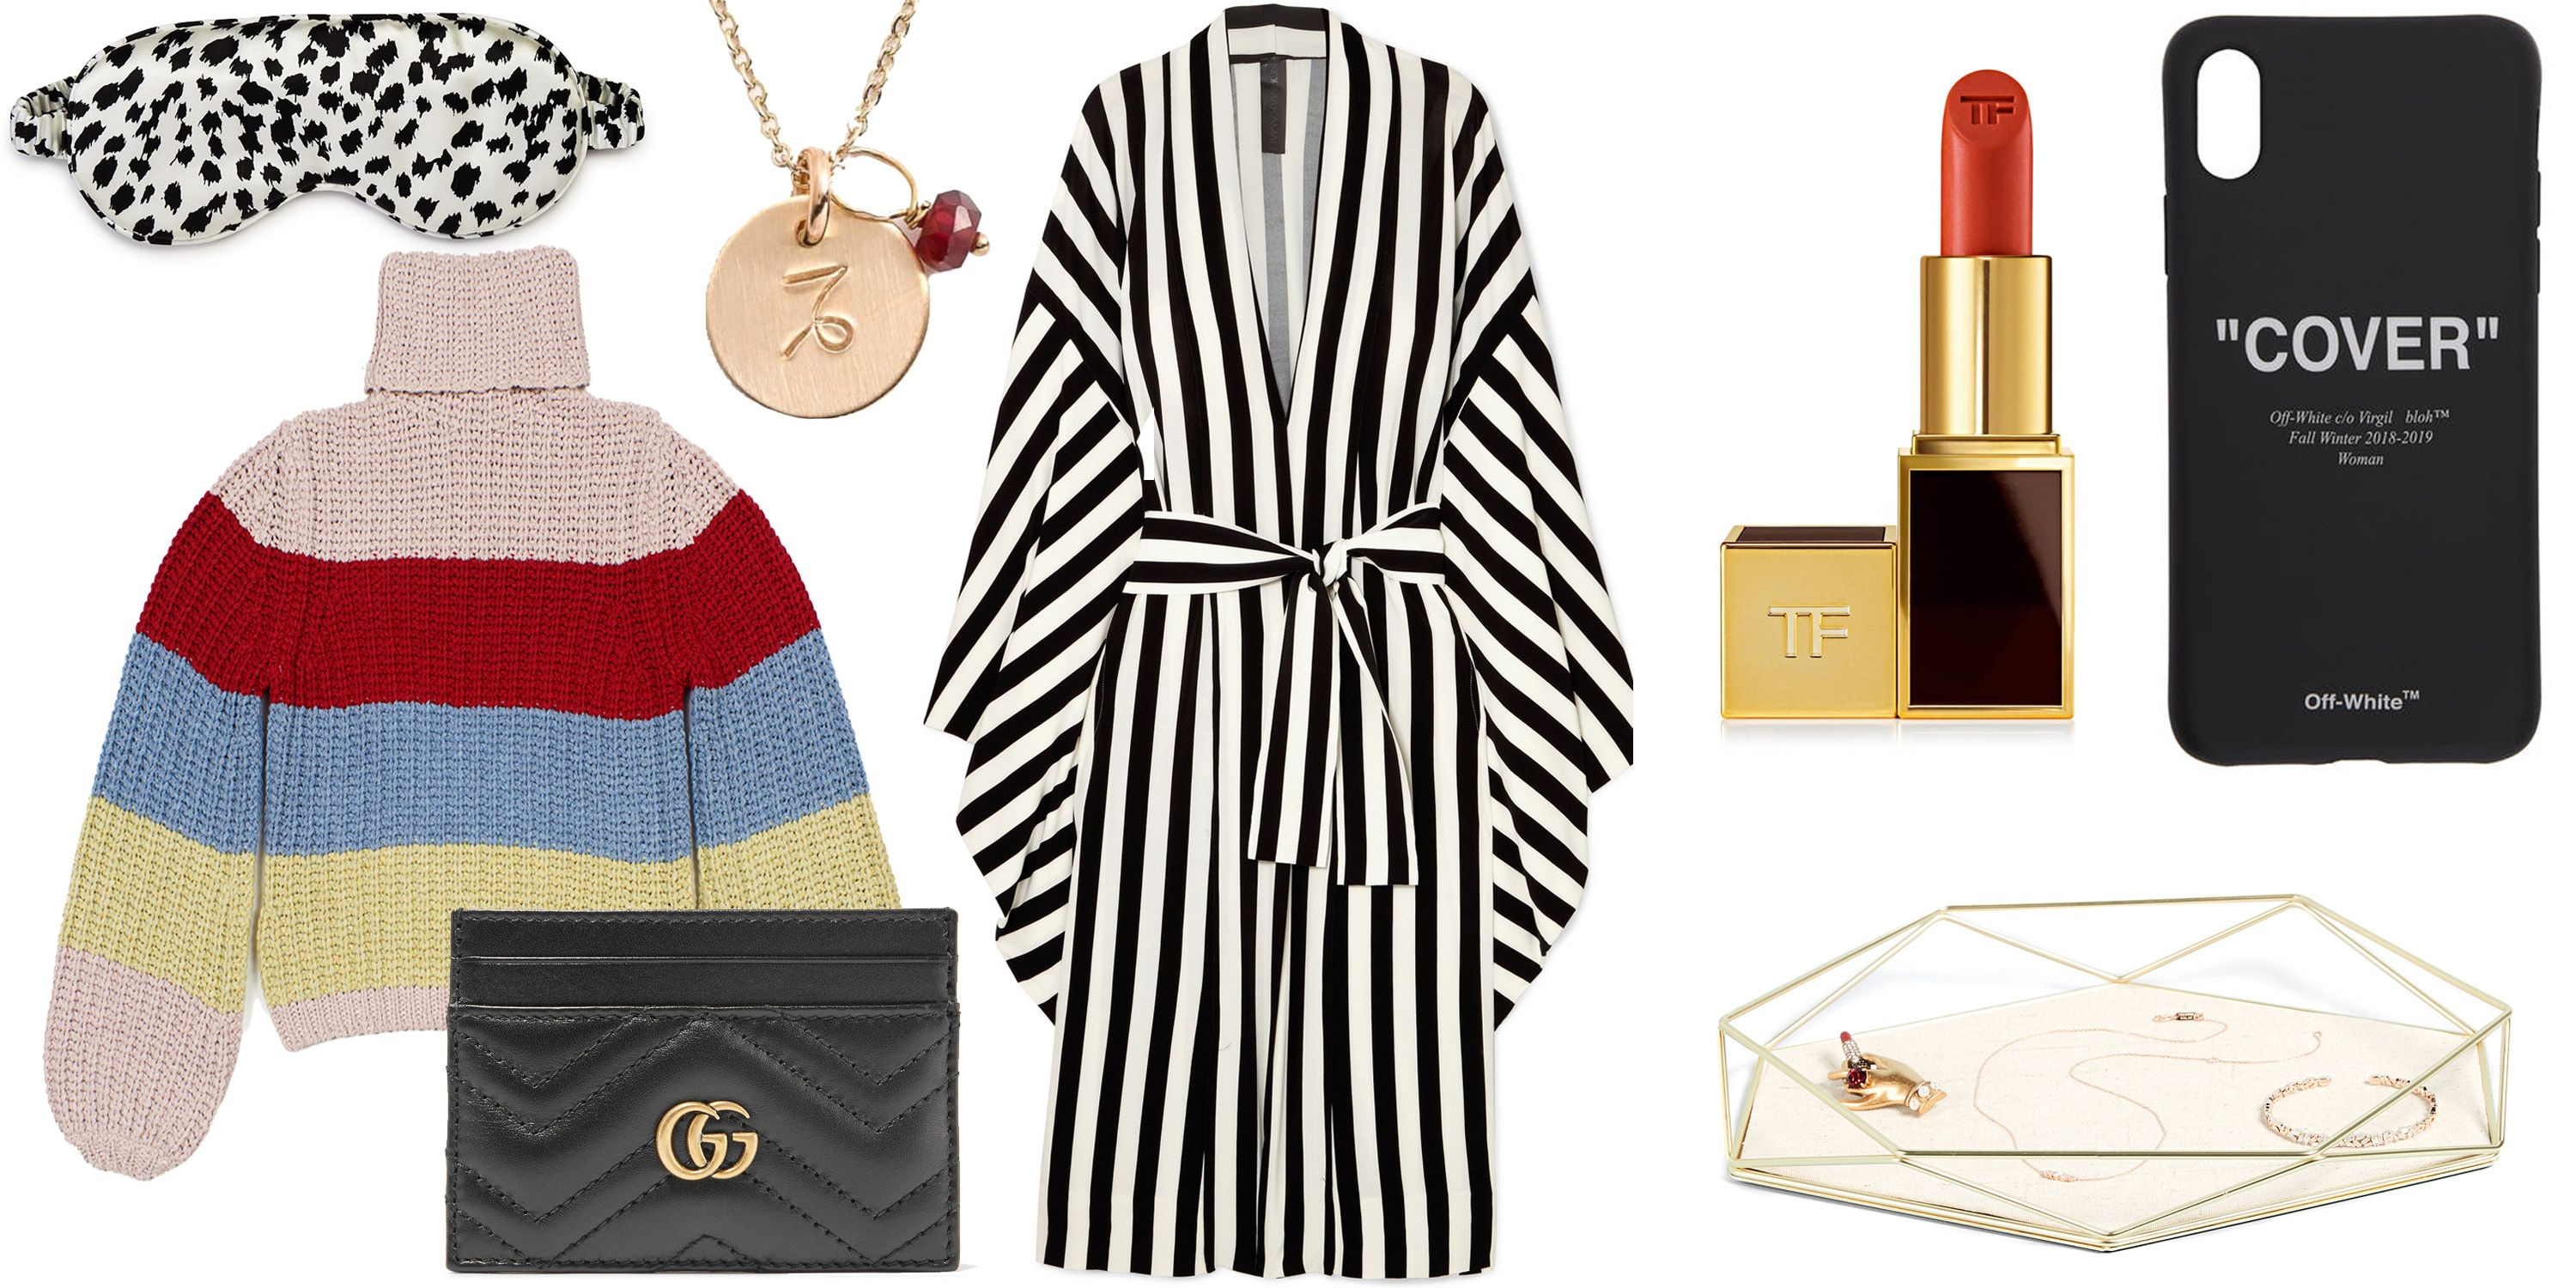 The Best Gifts For Stylish Women